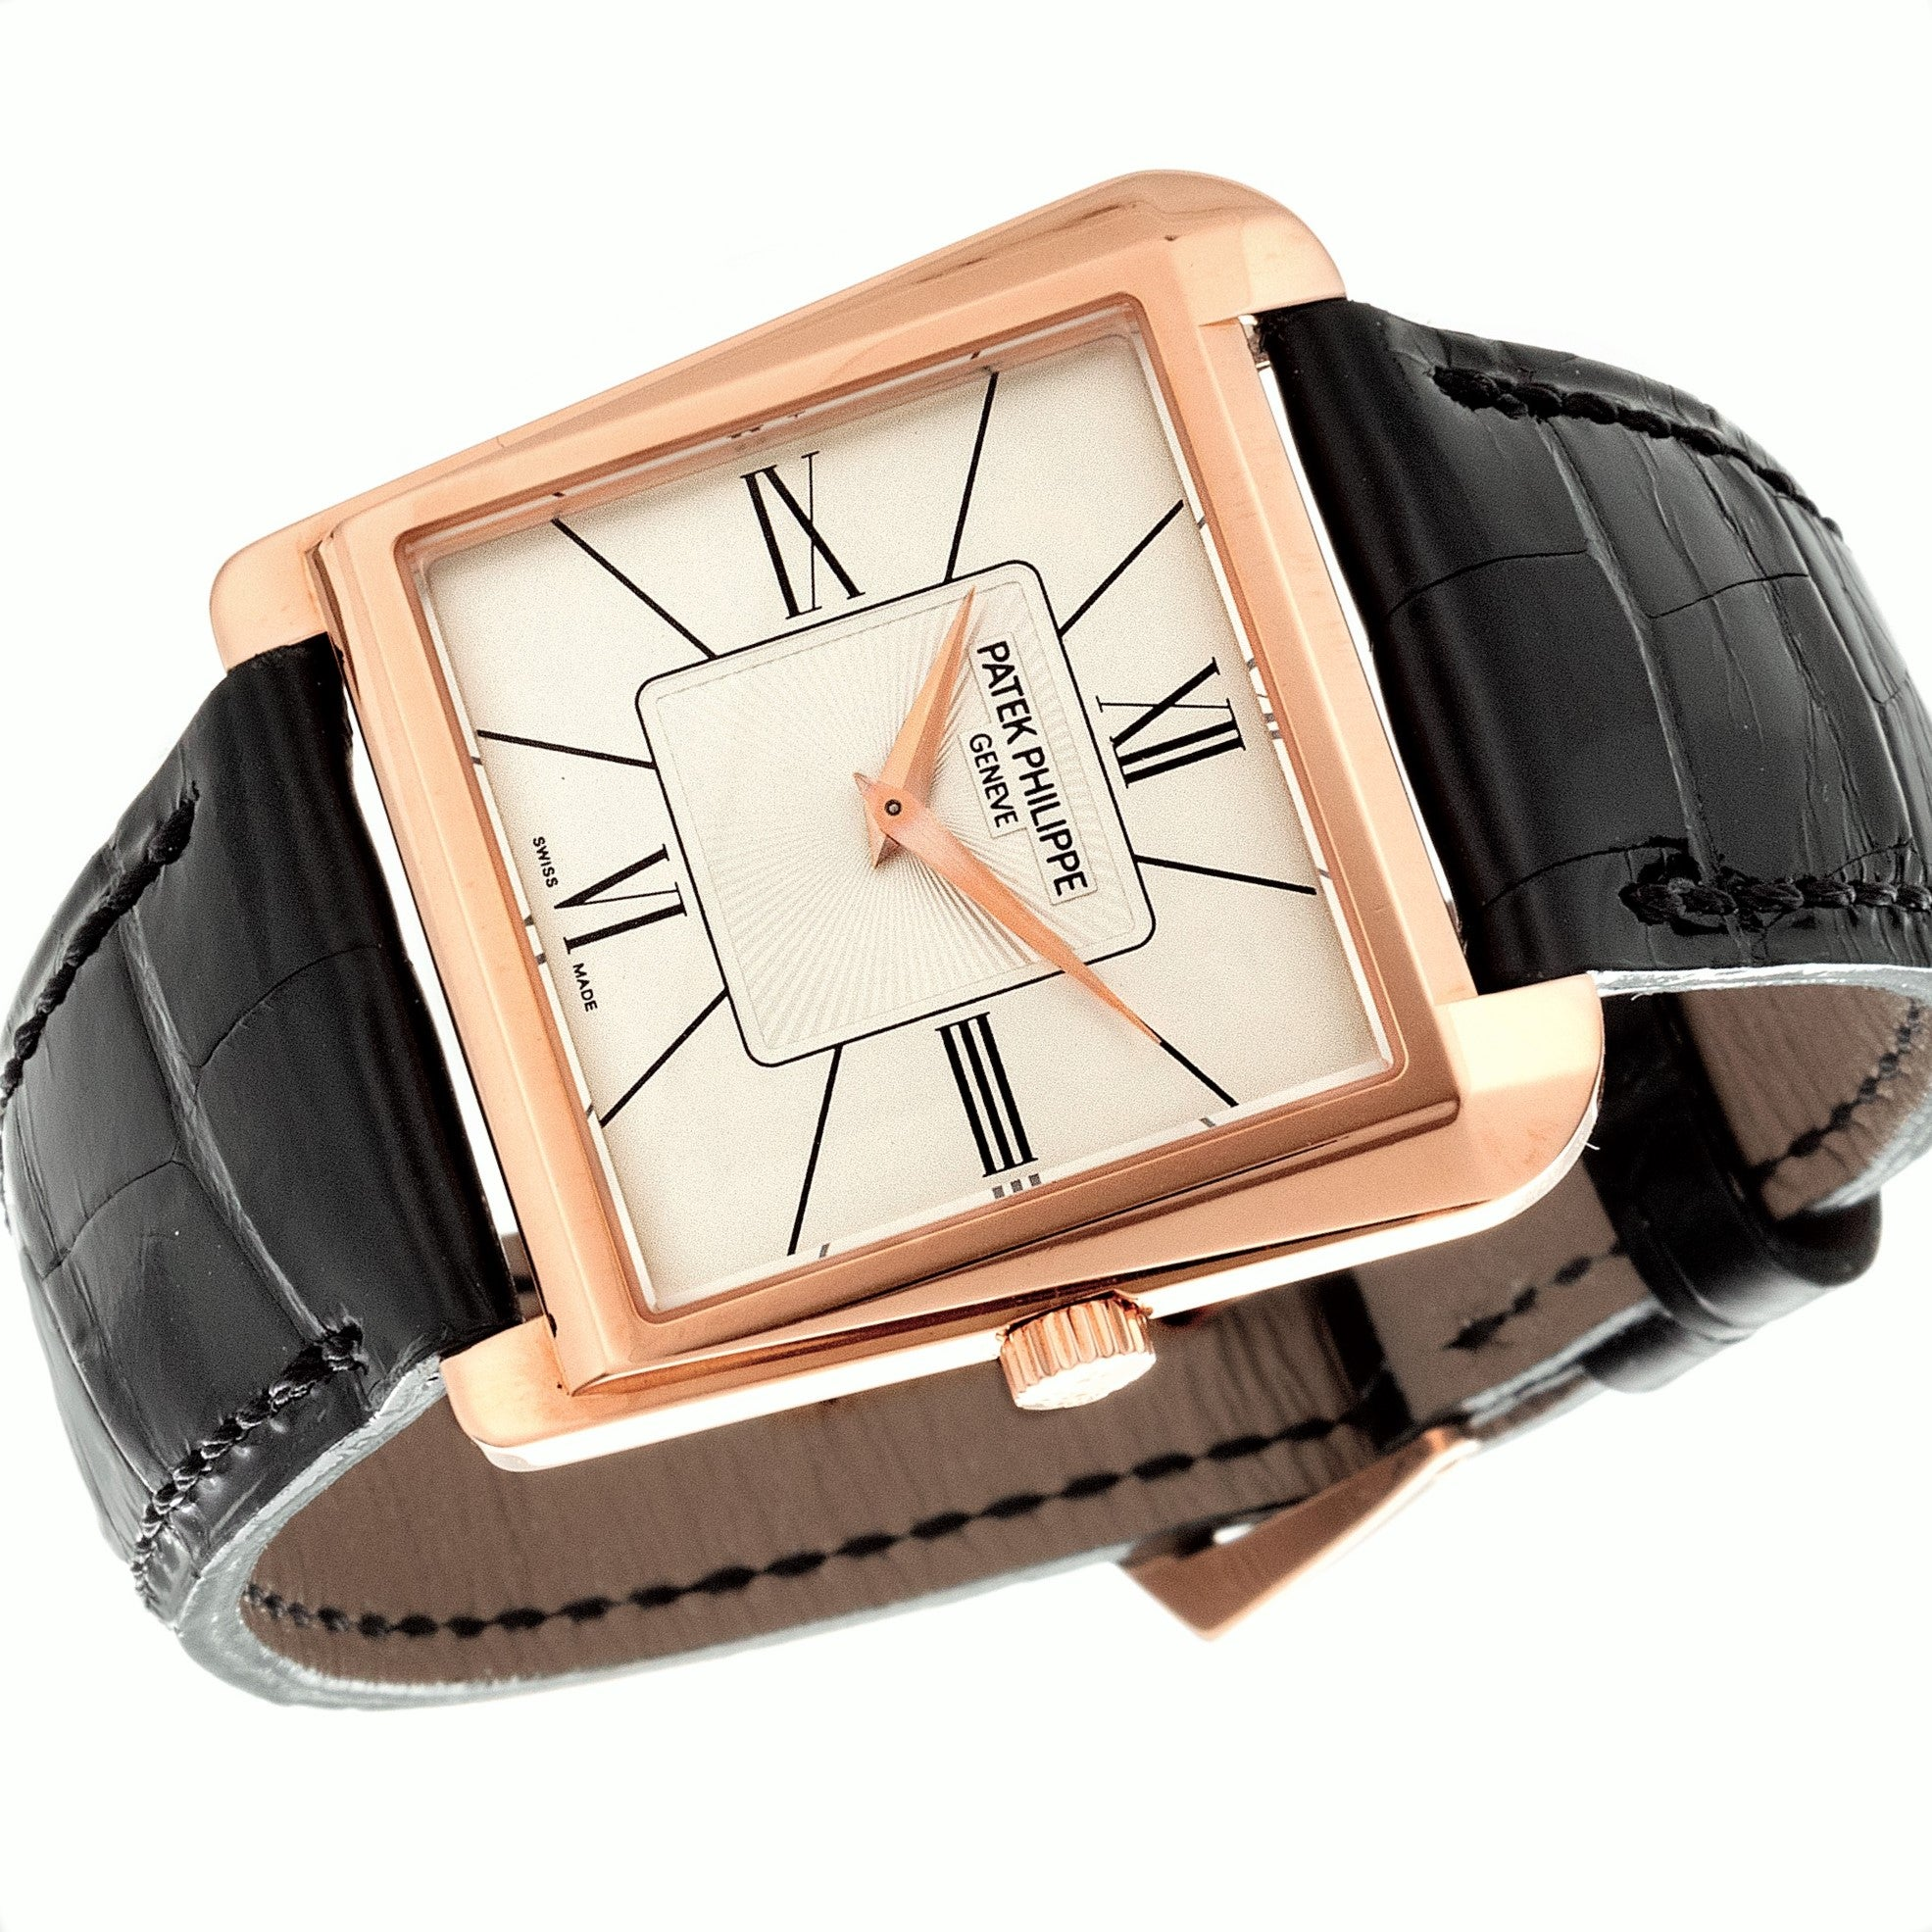 Patek Philippe 5489R Trapezoid Shaped Watch